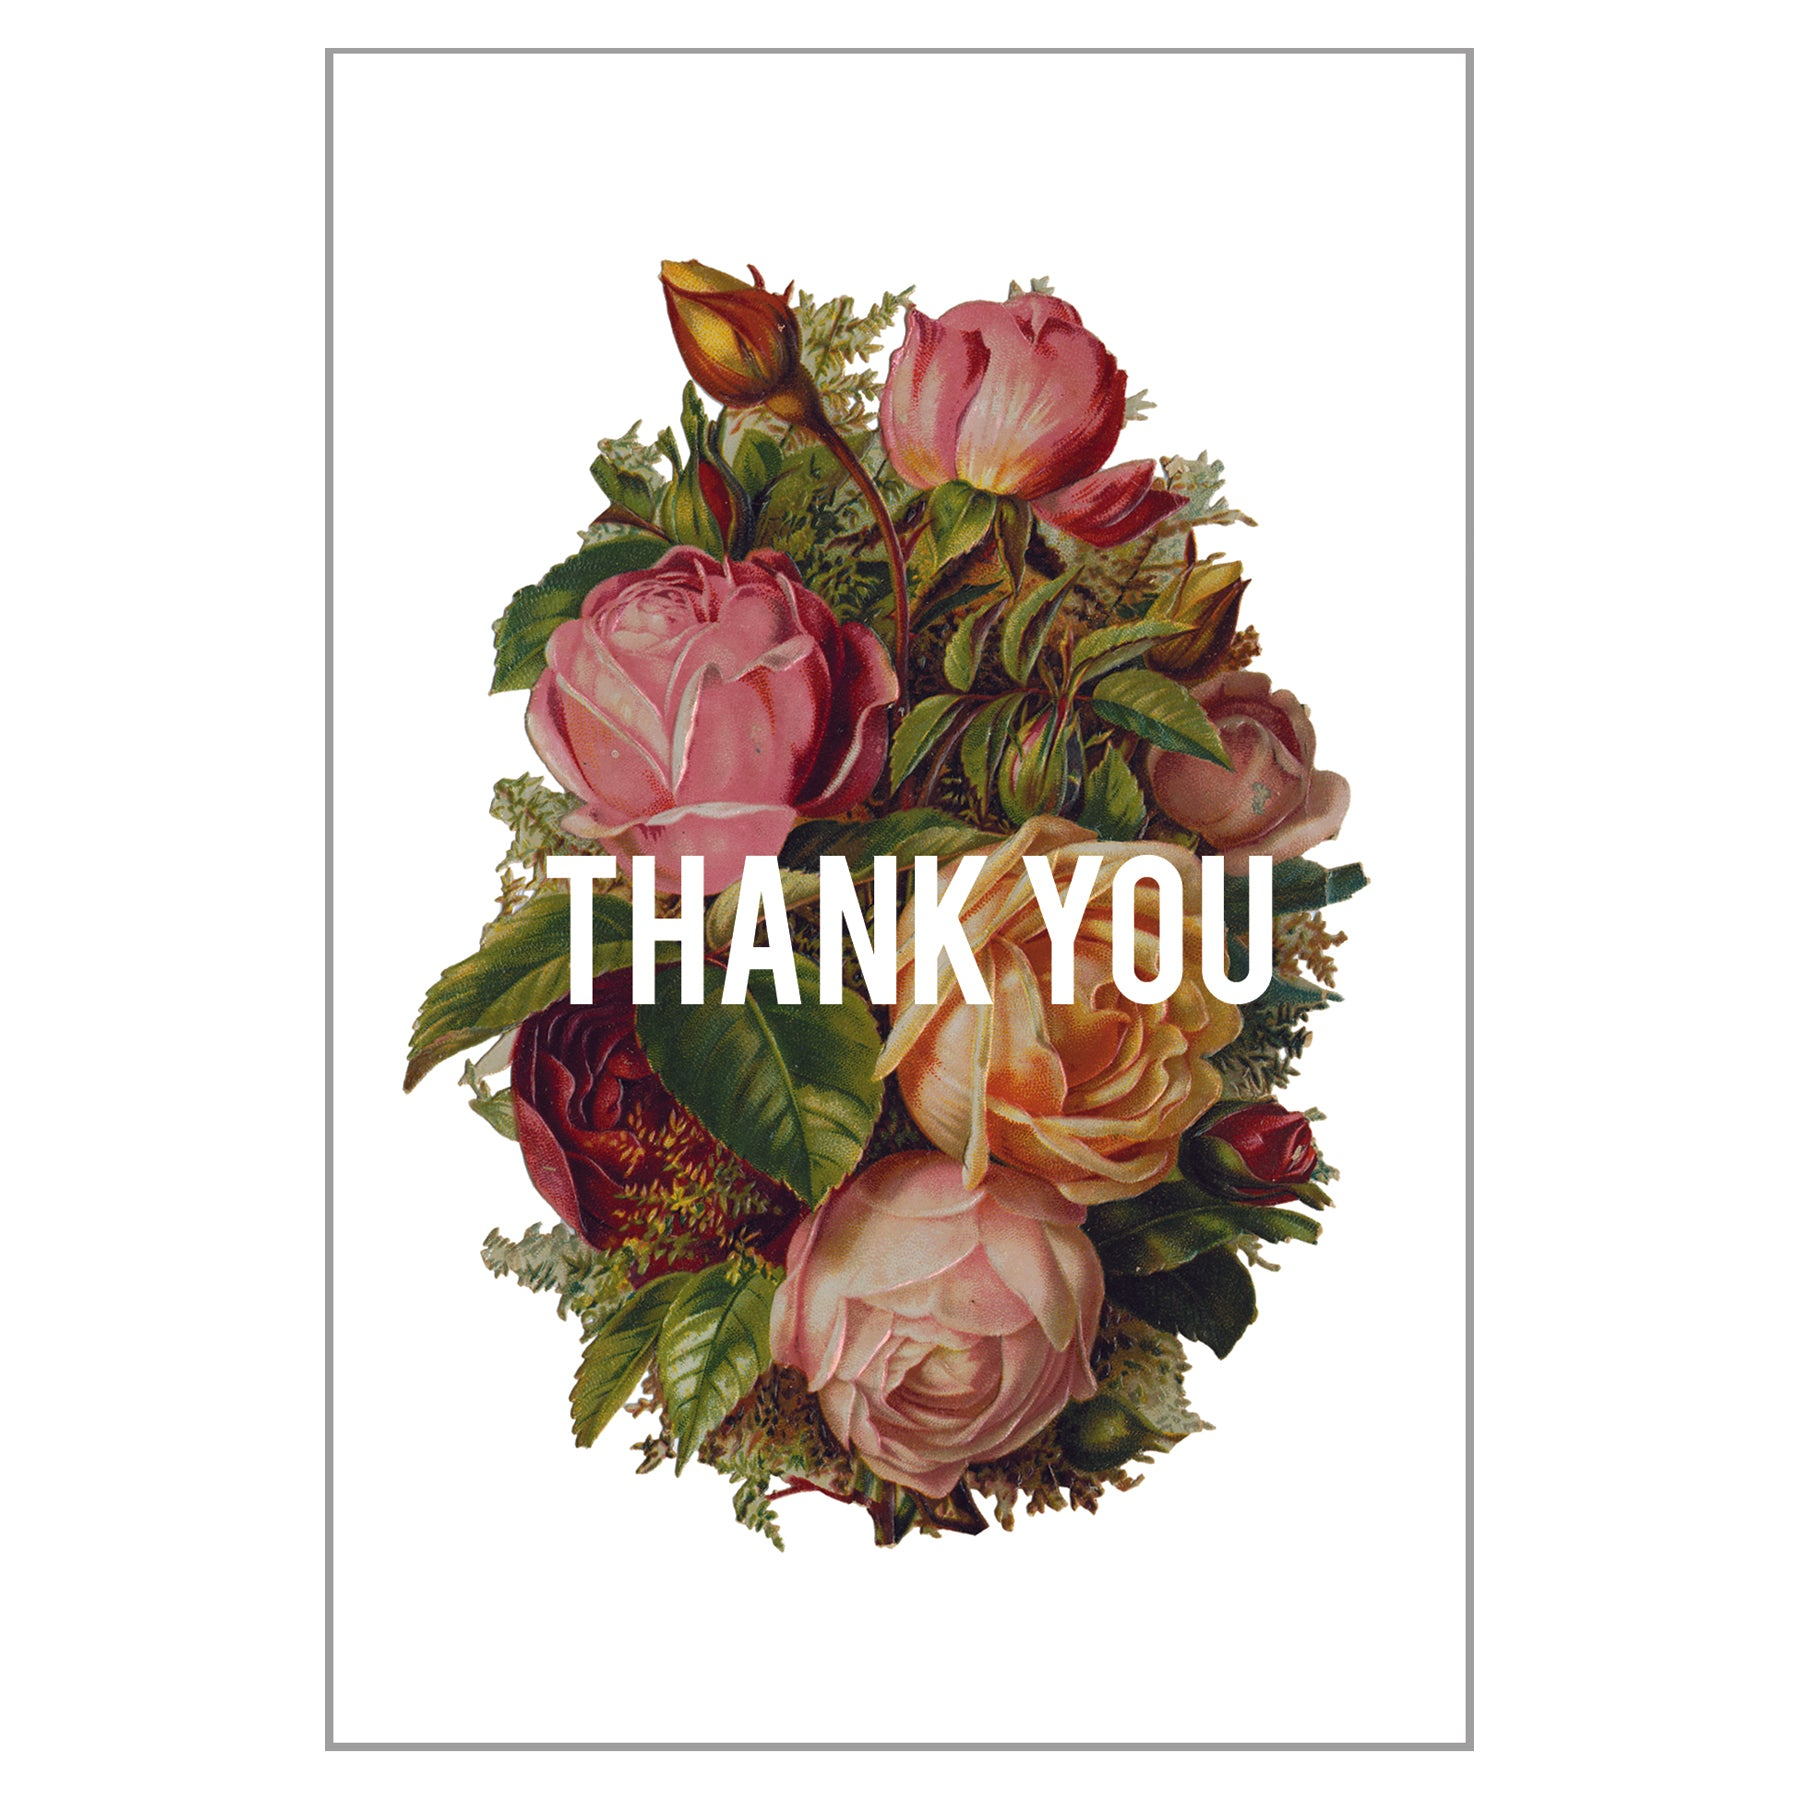 Bouquet thank you postcard lori langille studio bouquet thank you postcard izmirmasajfo